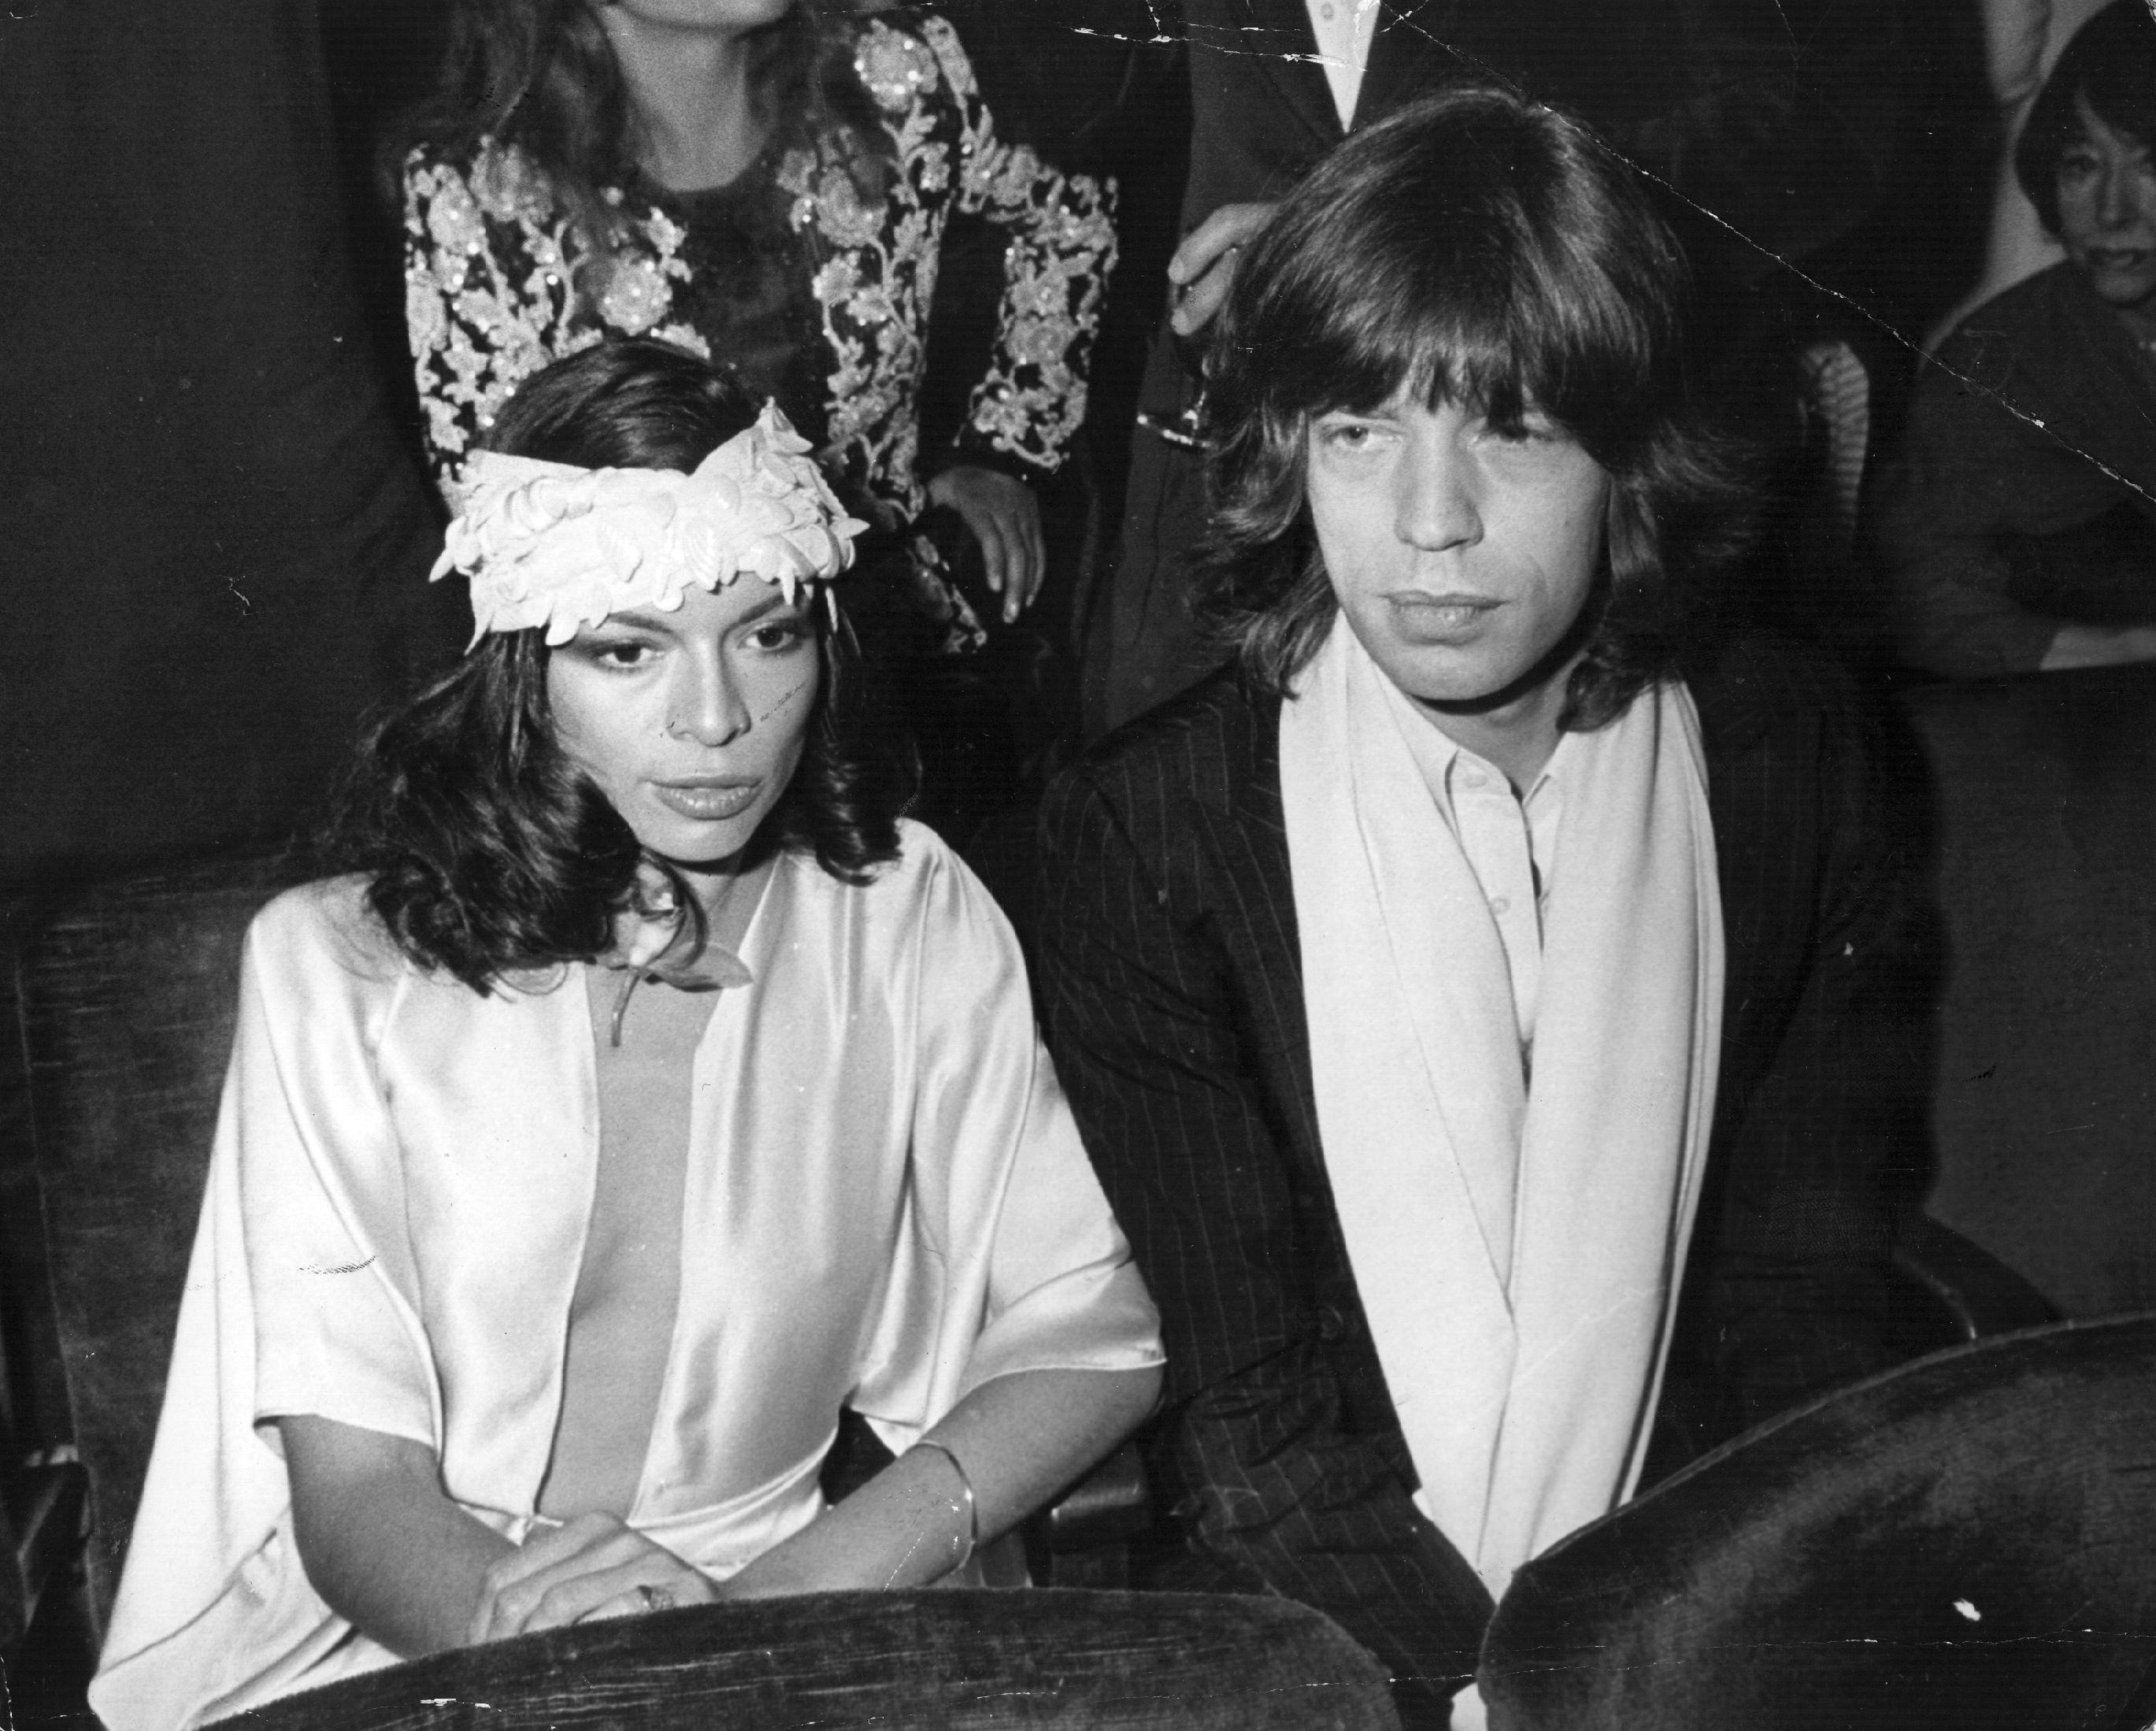 Mick Jagger and Bianca Jagger in 1975